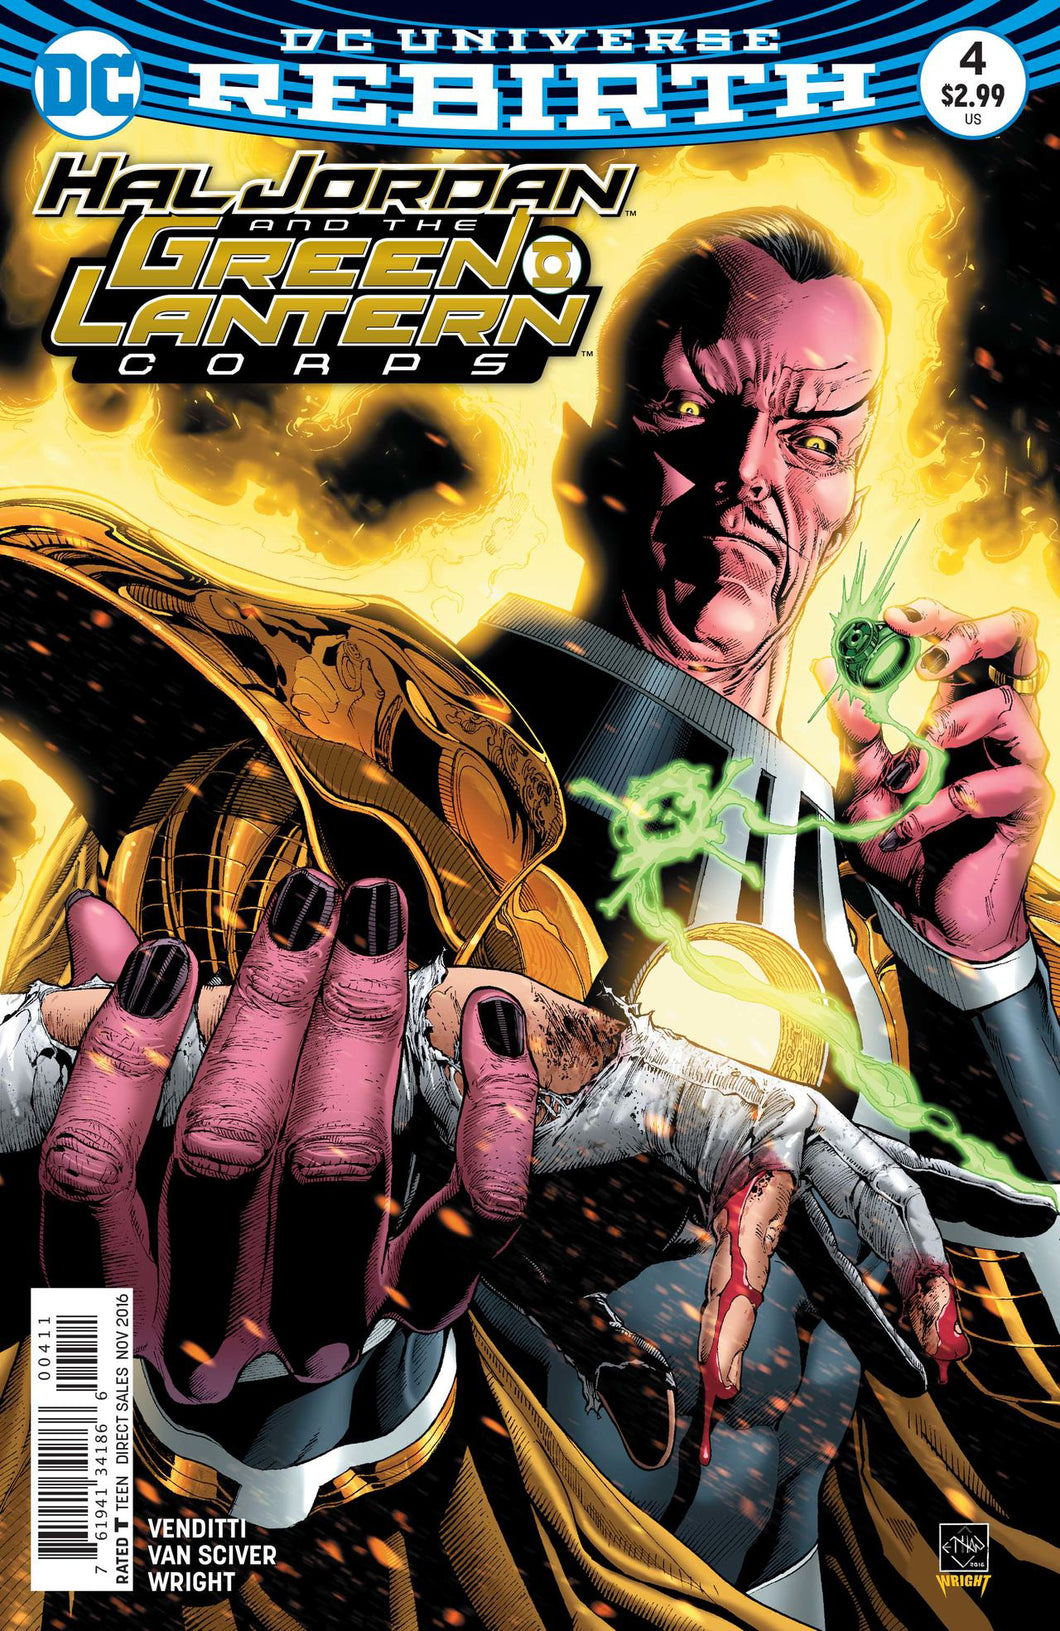 HAL JORDAN AND THE GREEN LANTERN CORPS #4